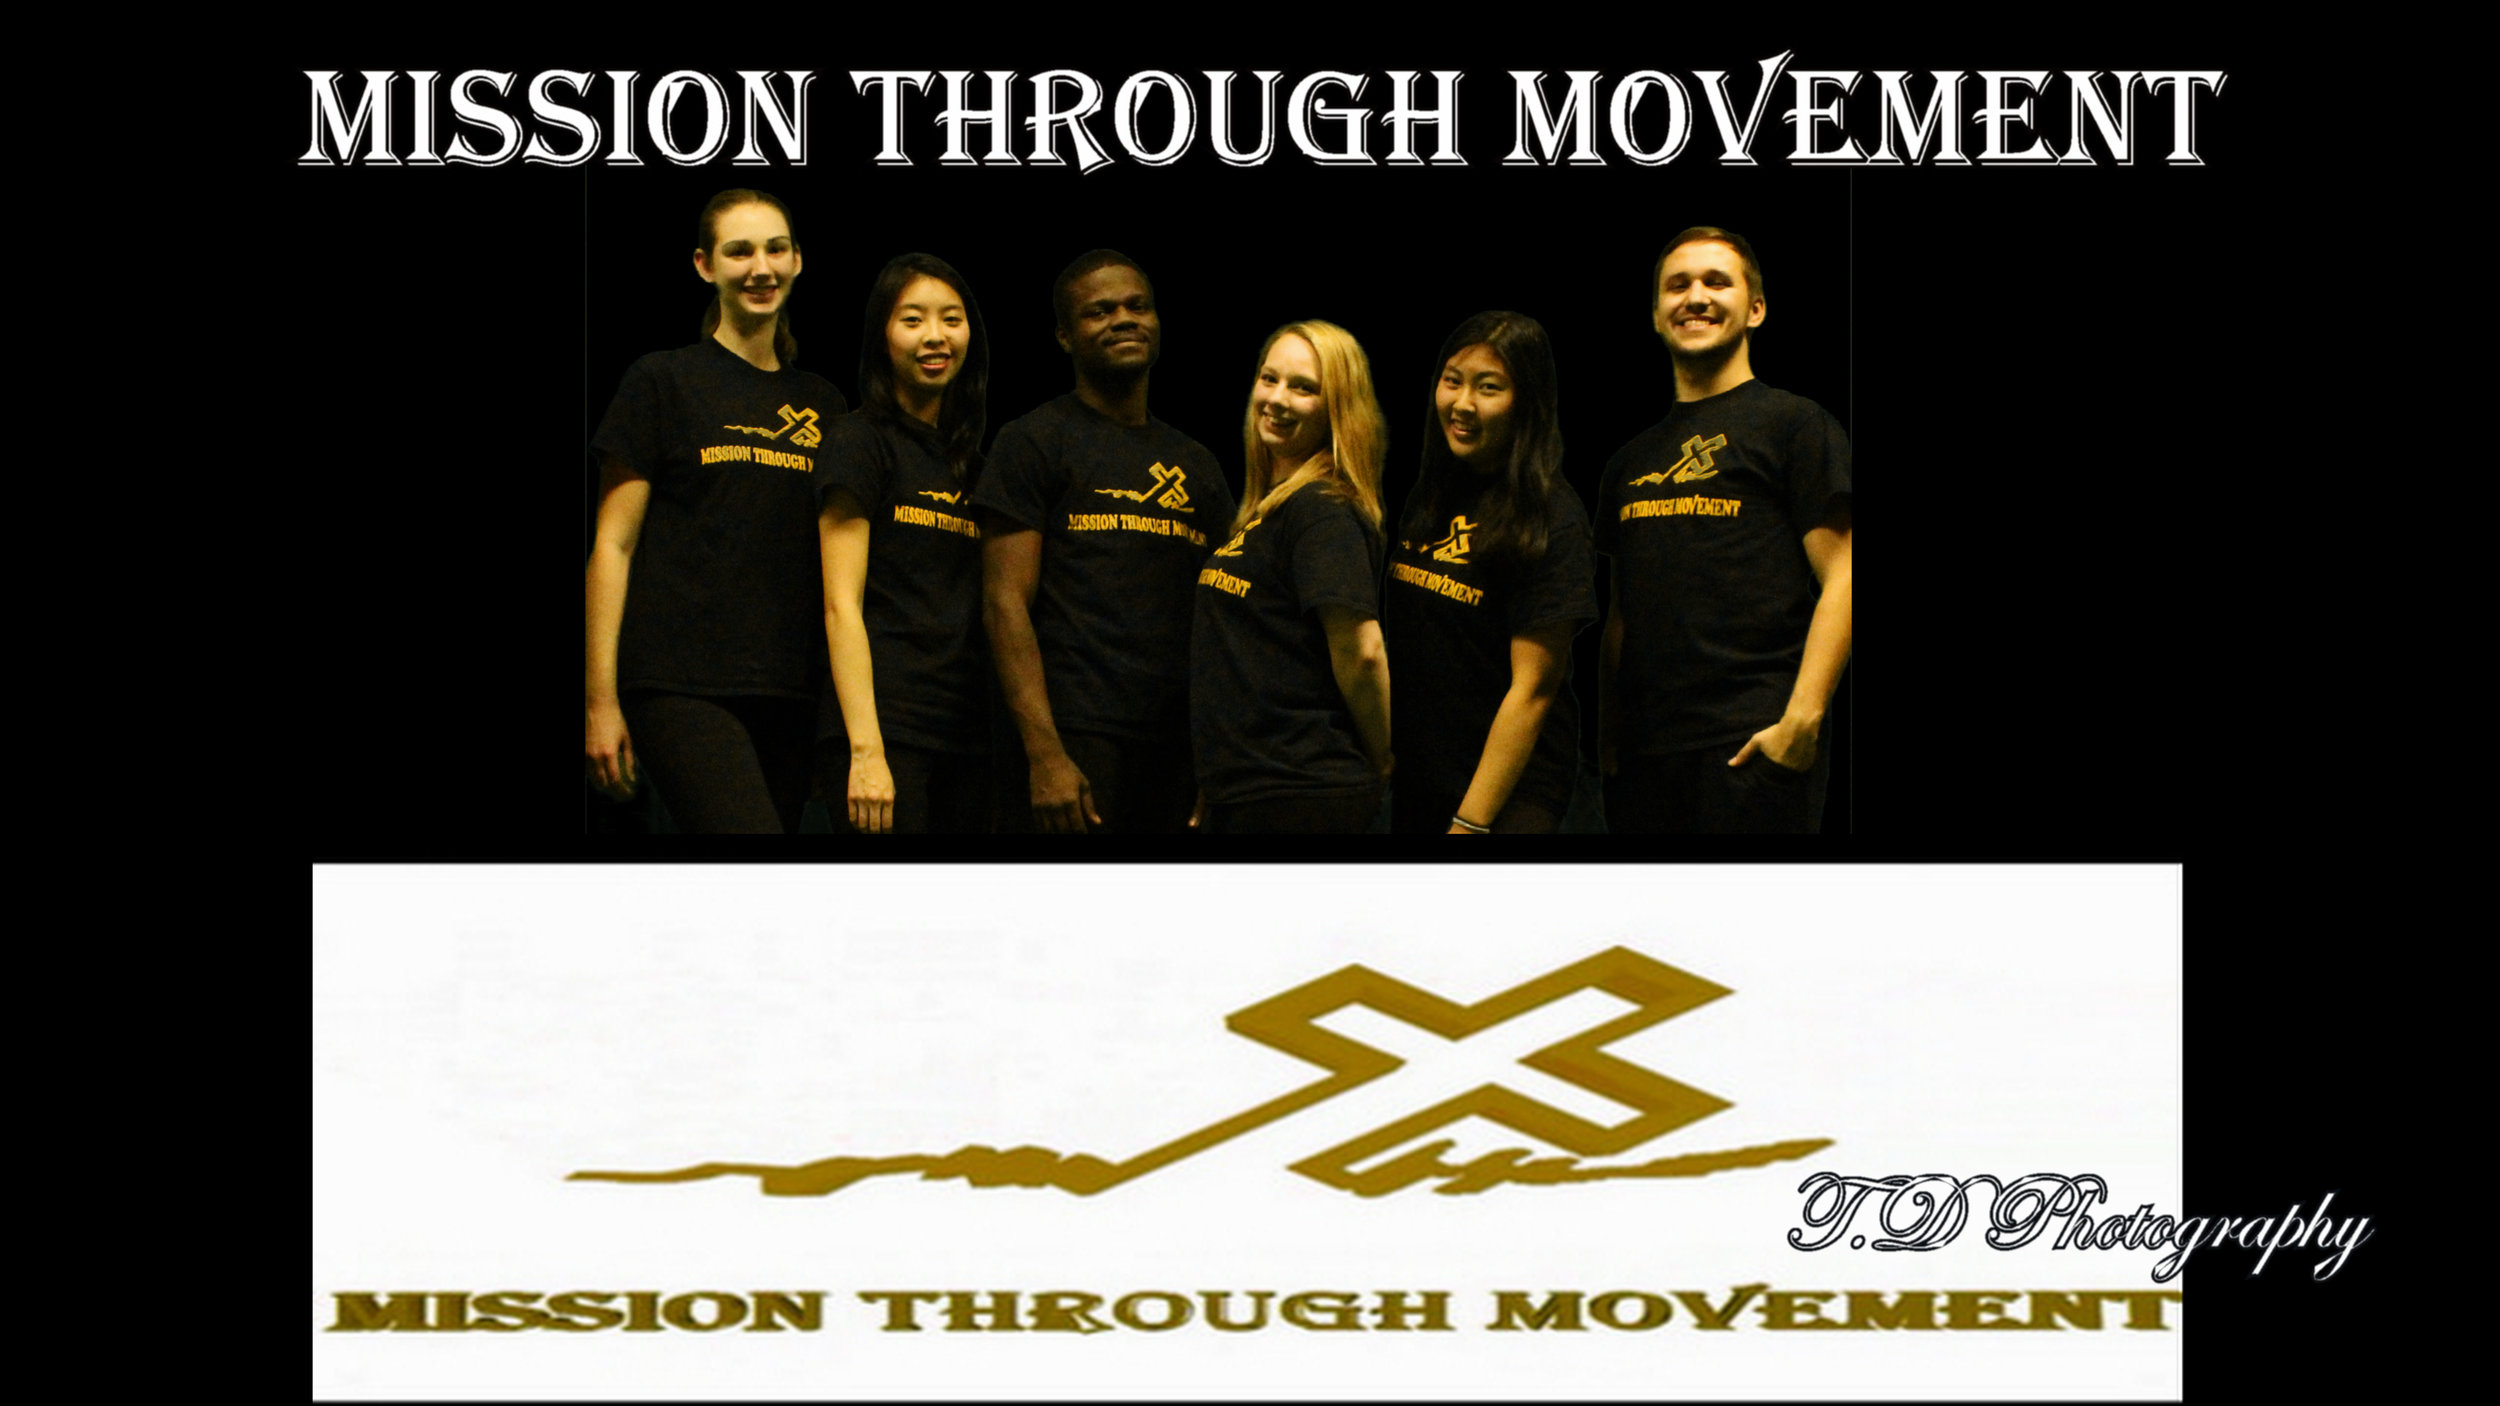 Mission Through Movement